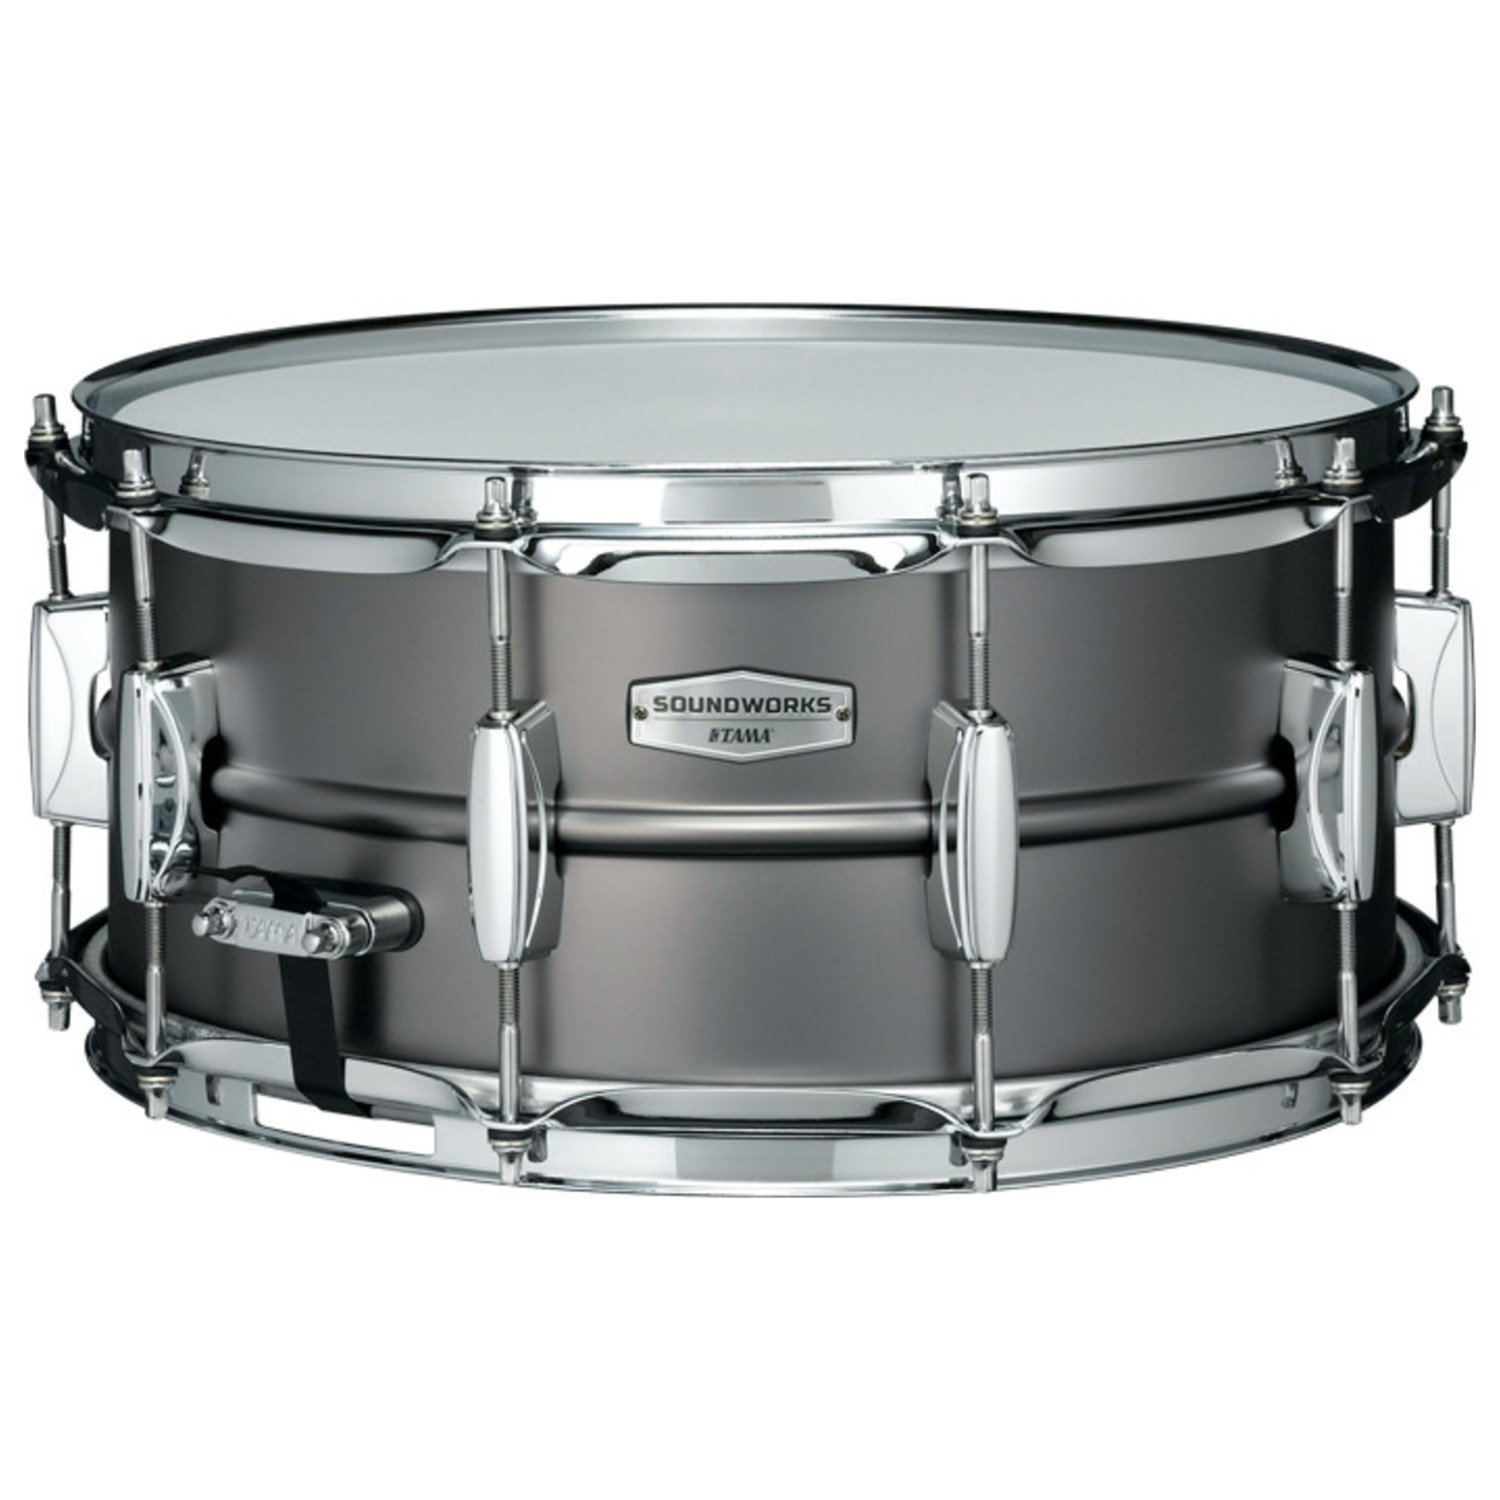 Tama Soundworks Steel Snare Drum 14 x 6.5 in.